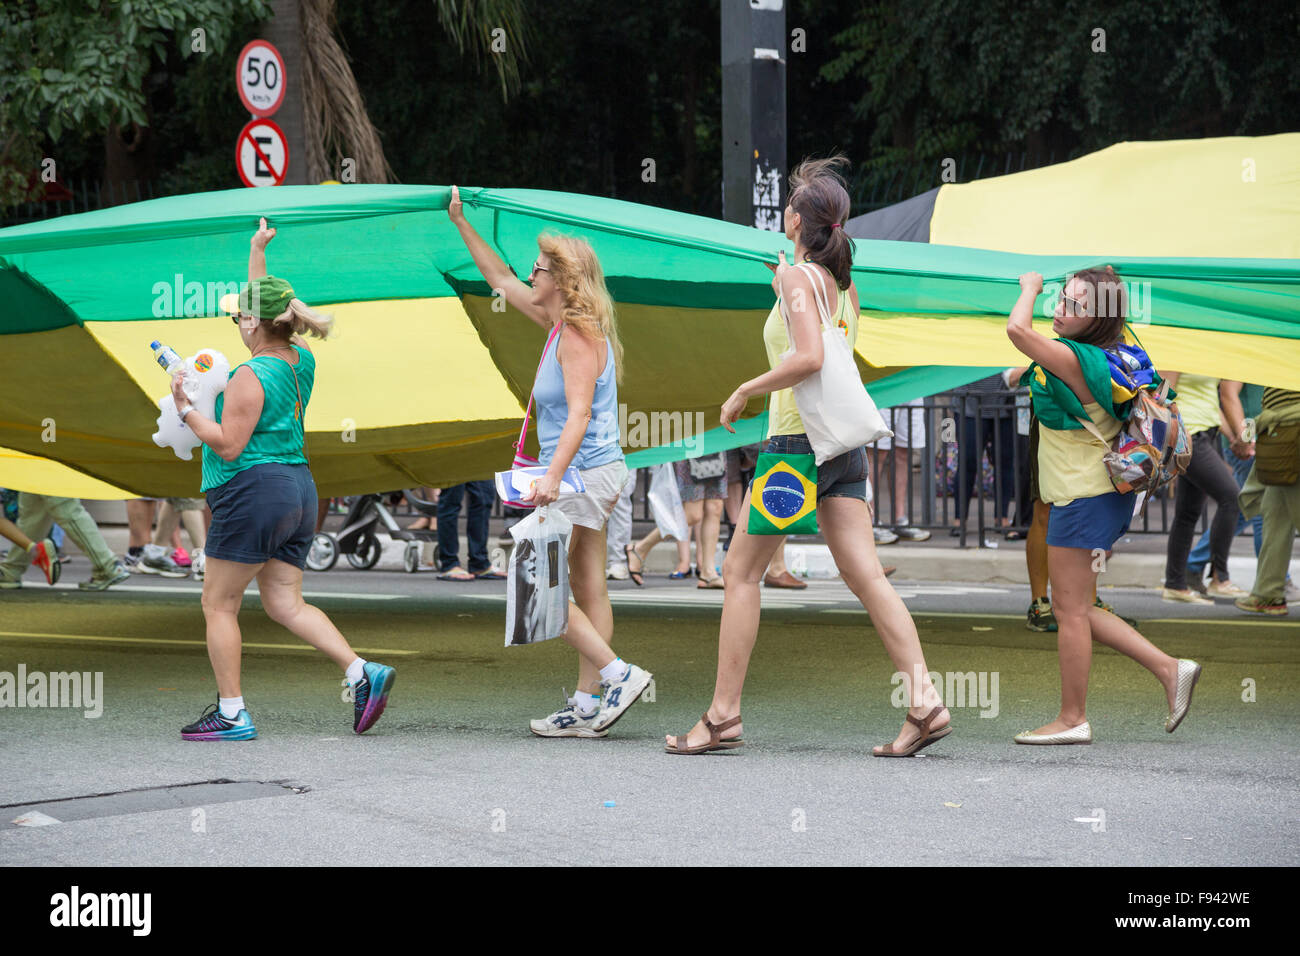 Sao Paulo, Brazil. 13th December, 2015. Demonstrators march holding a giant flag with the word 'Impeachment' - Stock Image